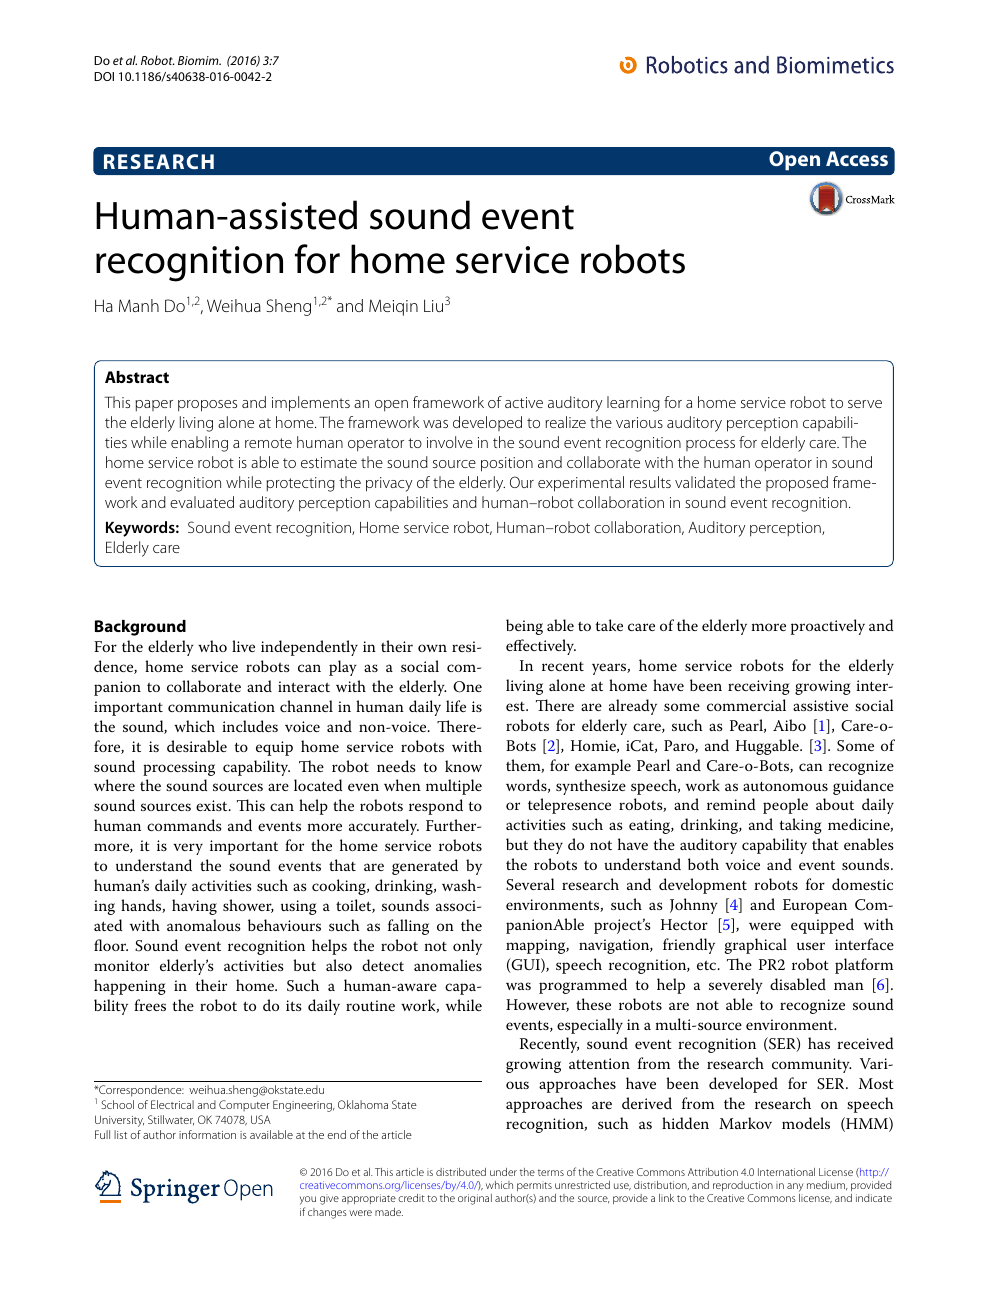 Human-assisted sound event recognition for home service